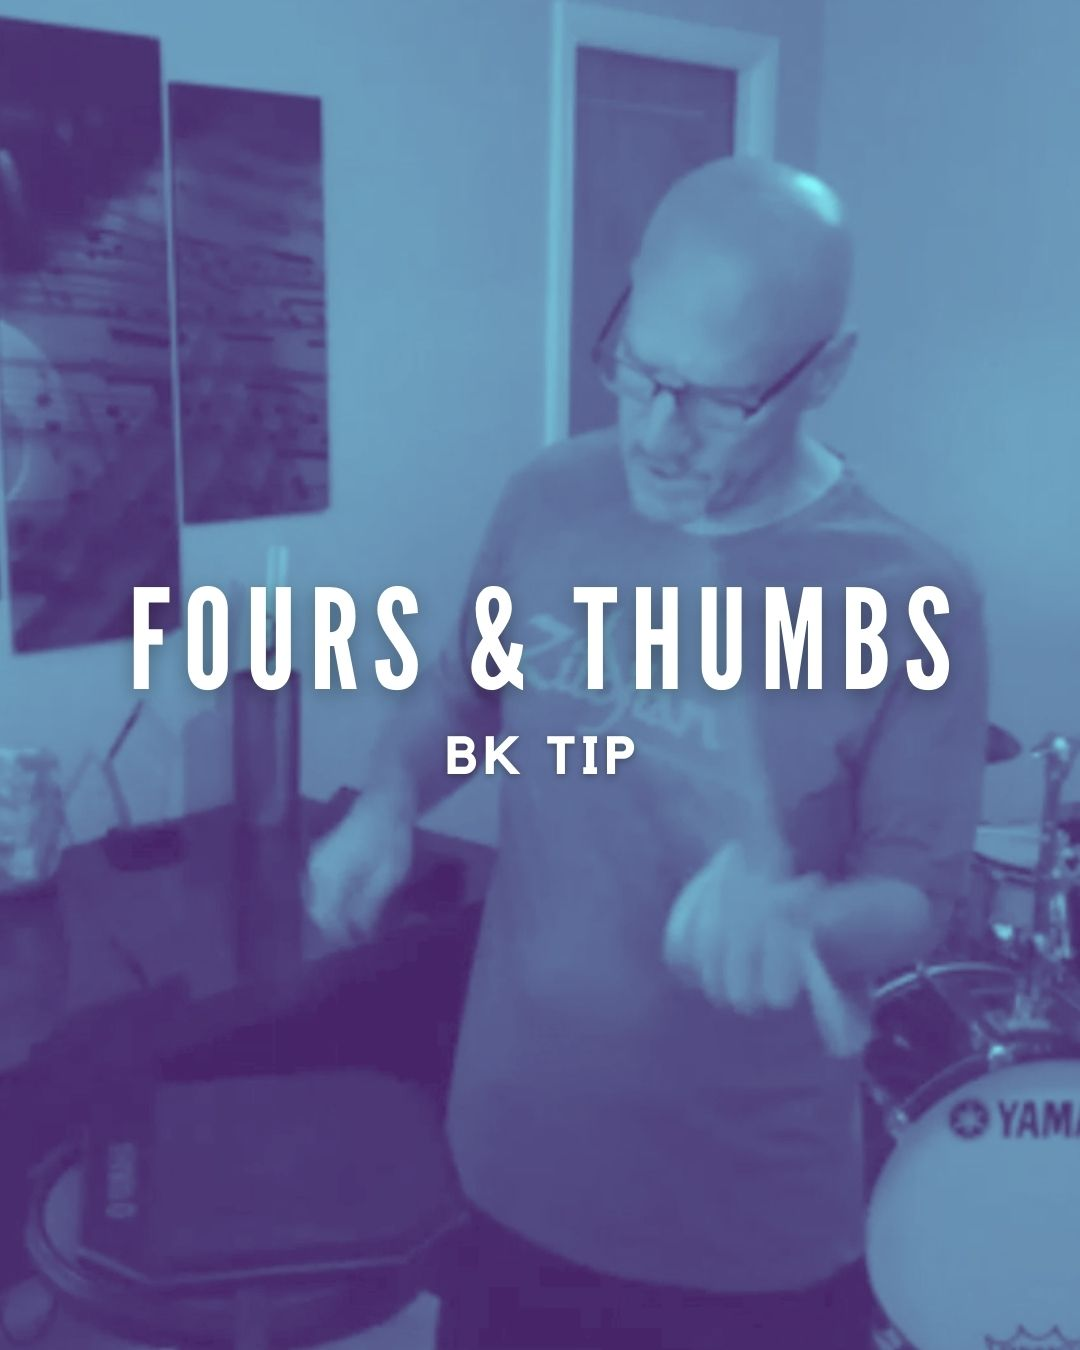 Q&A: Fours & Thumbs